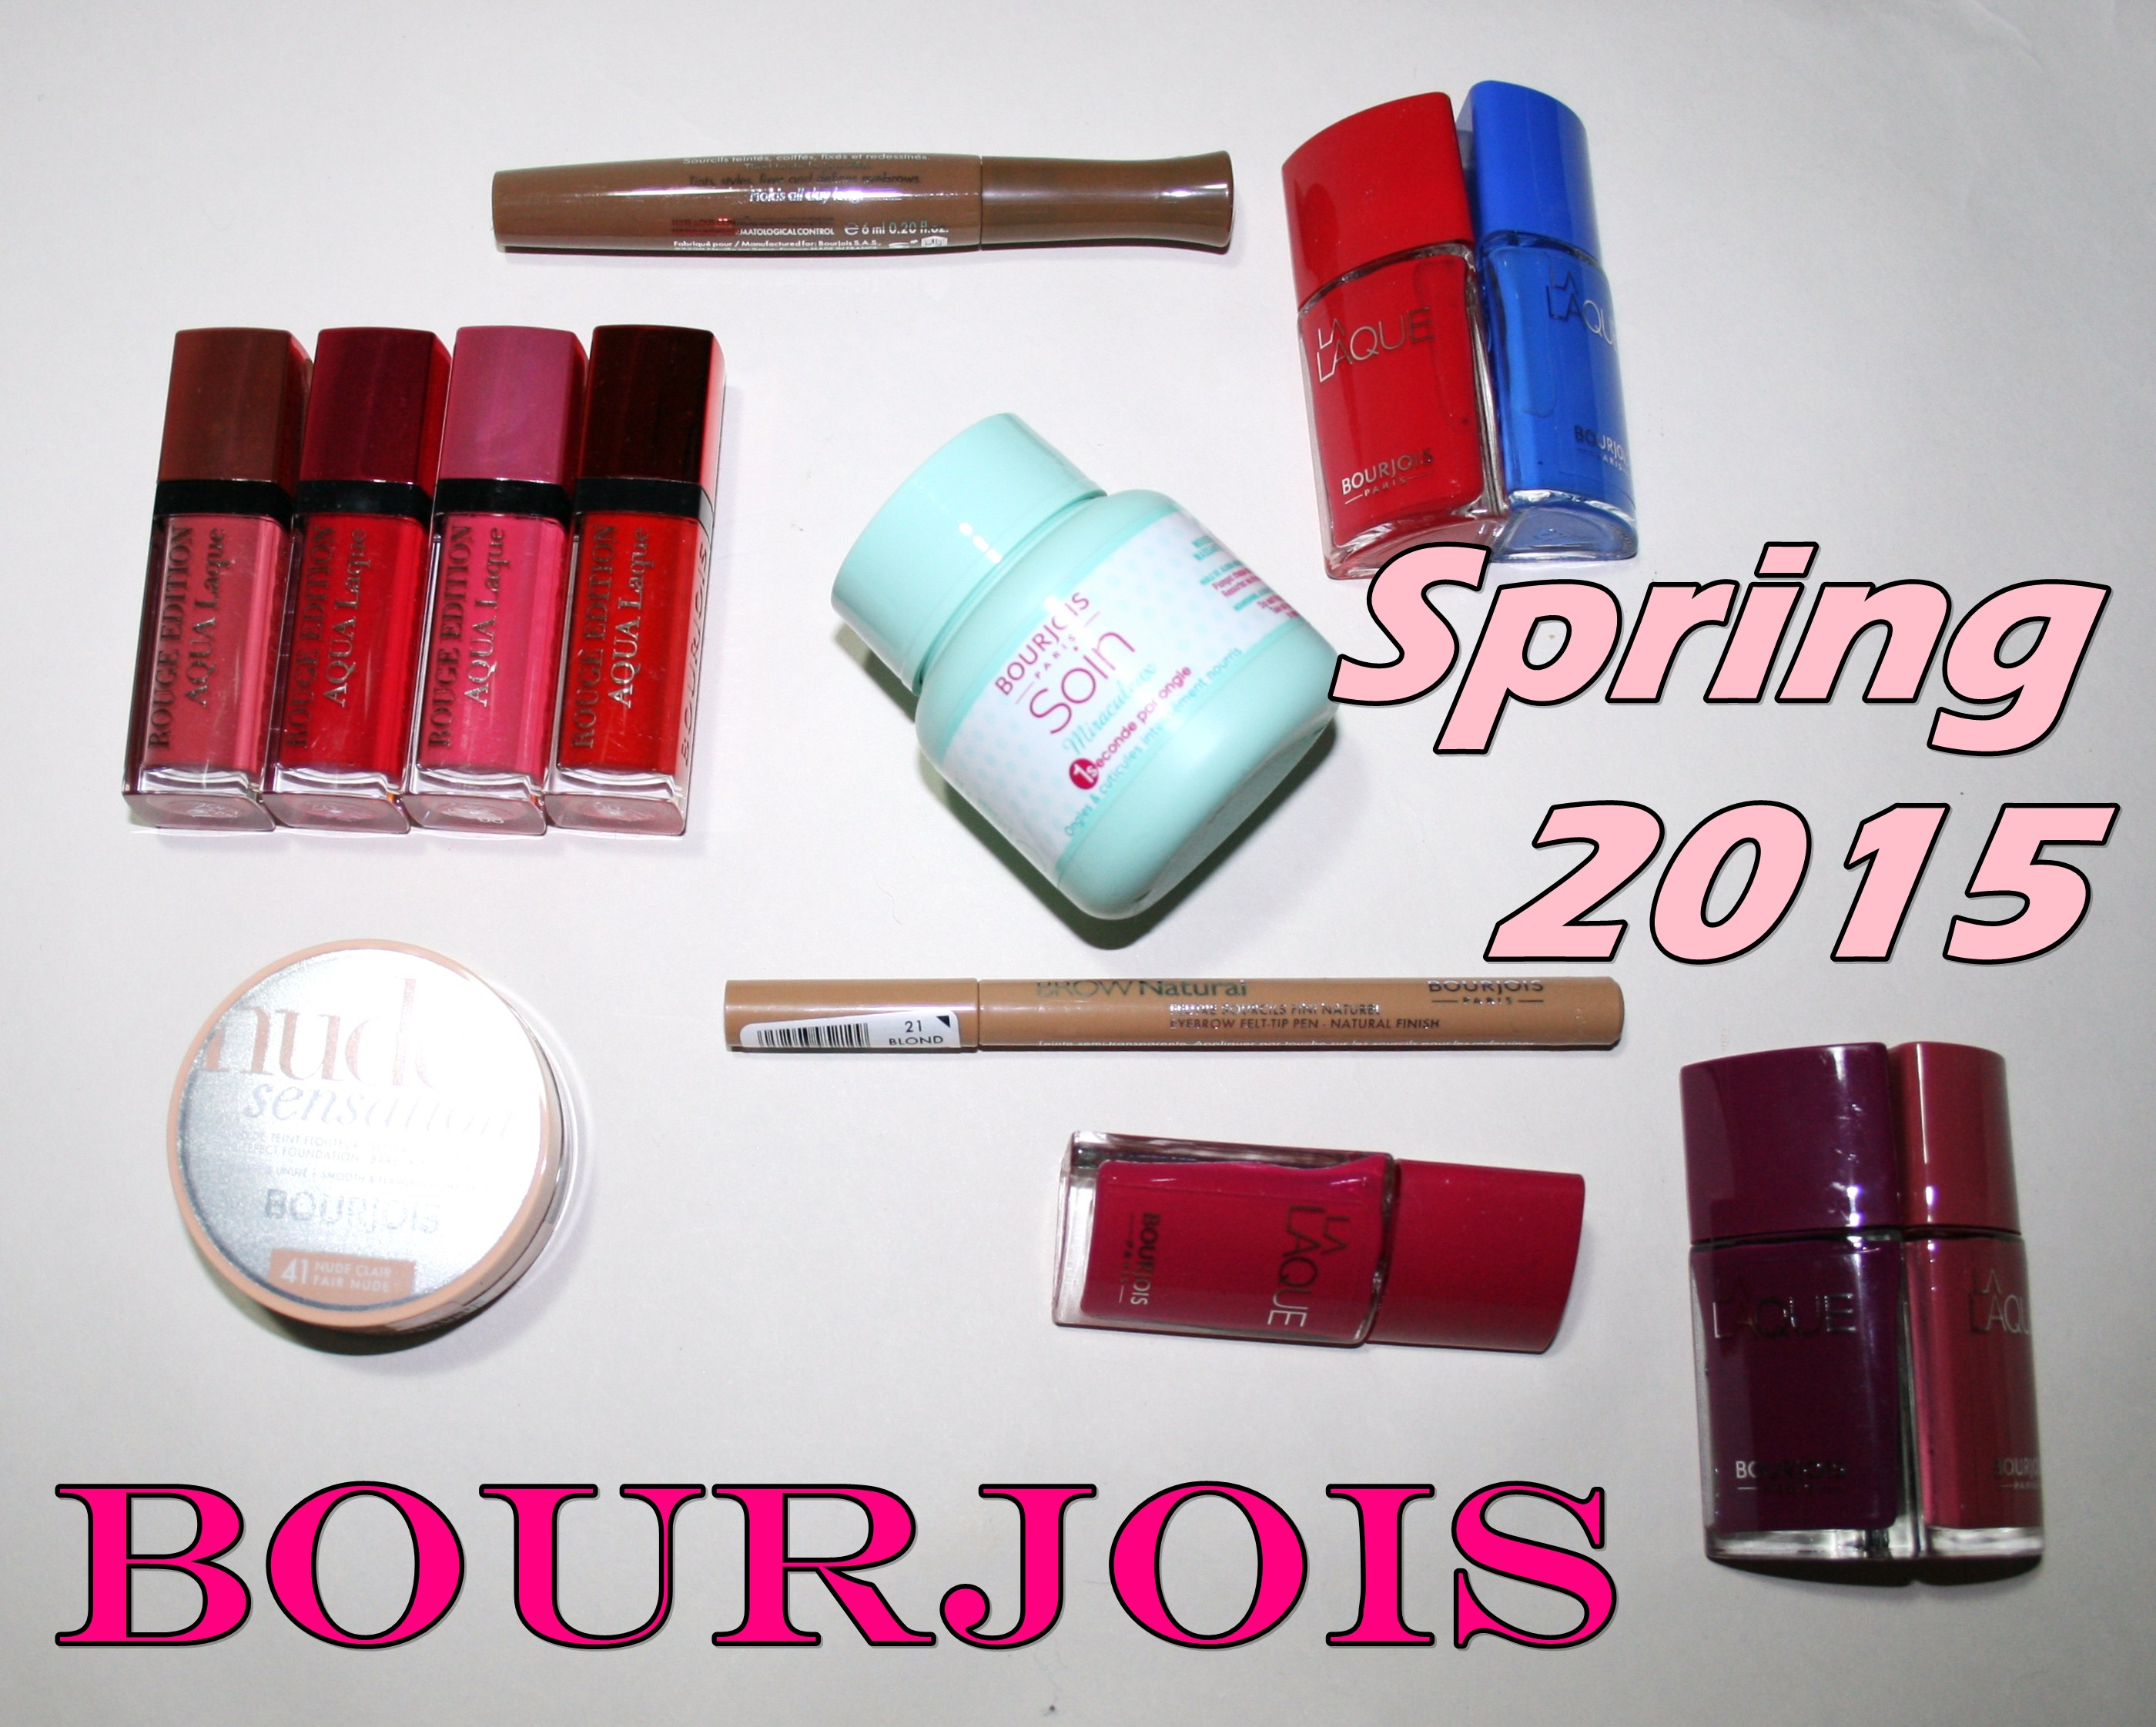 Bourjois Spring Launches 2015